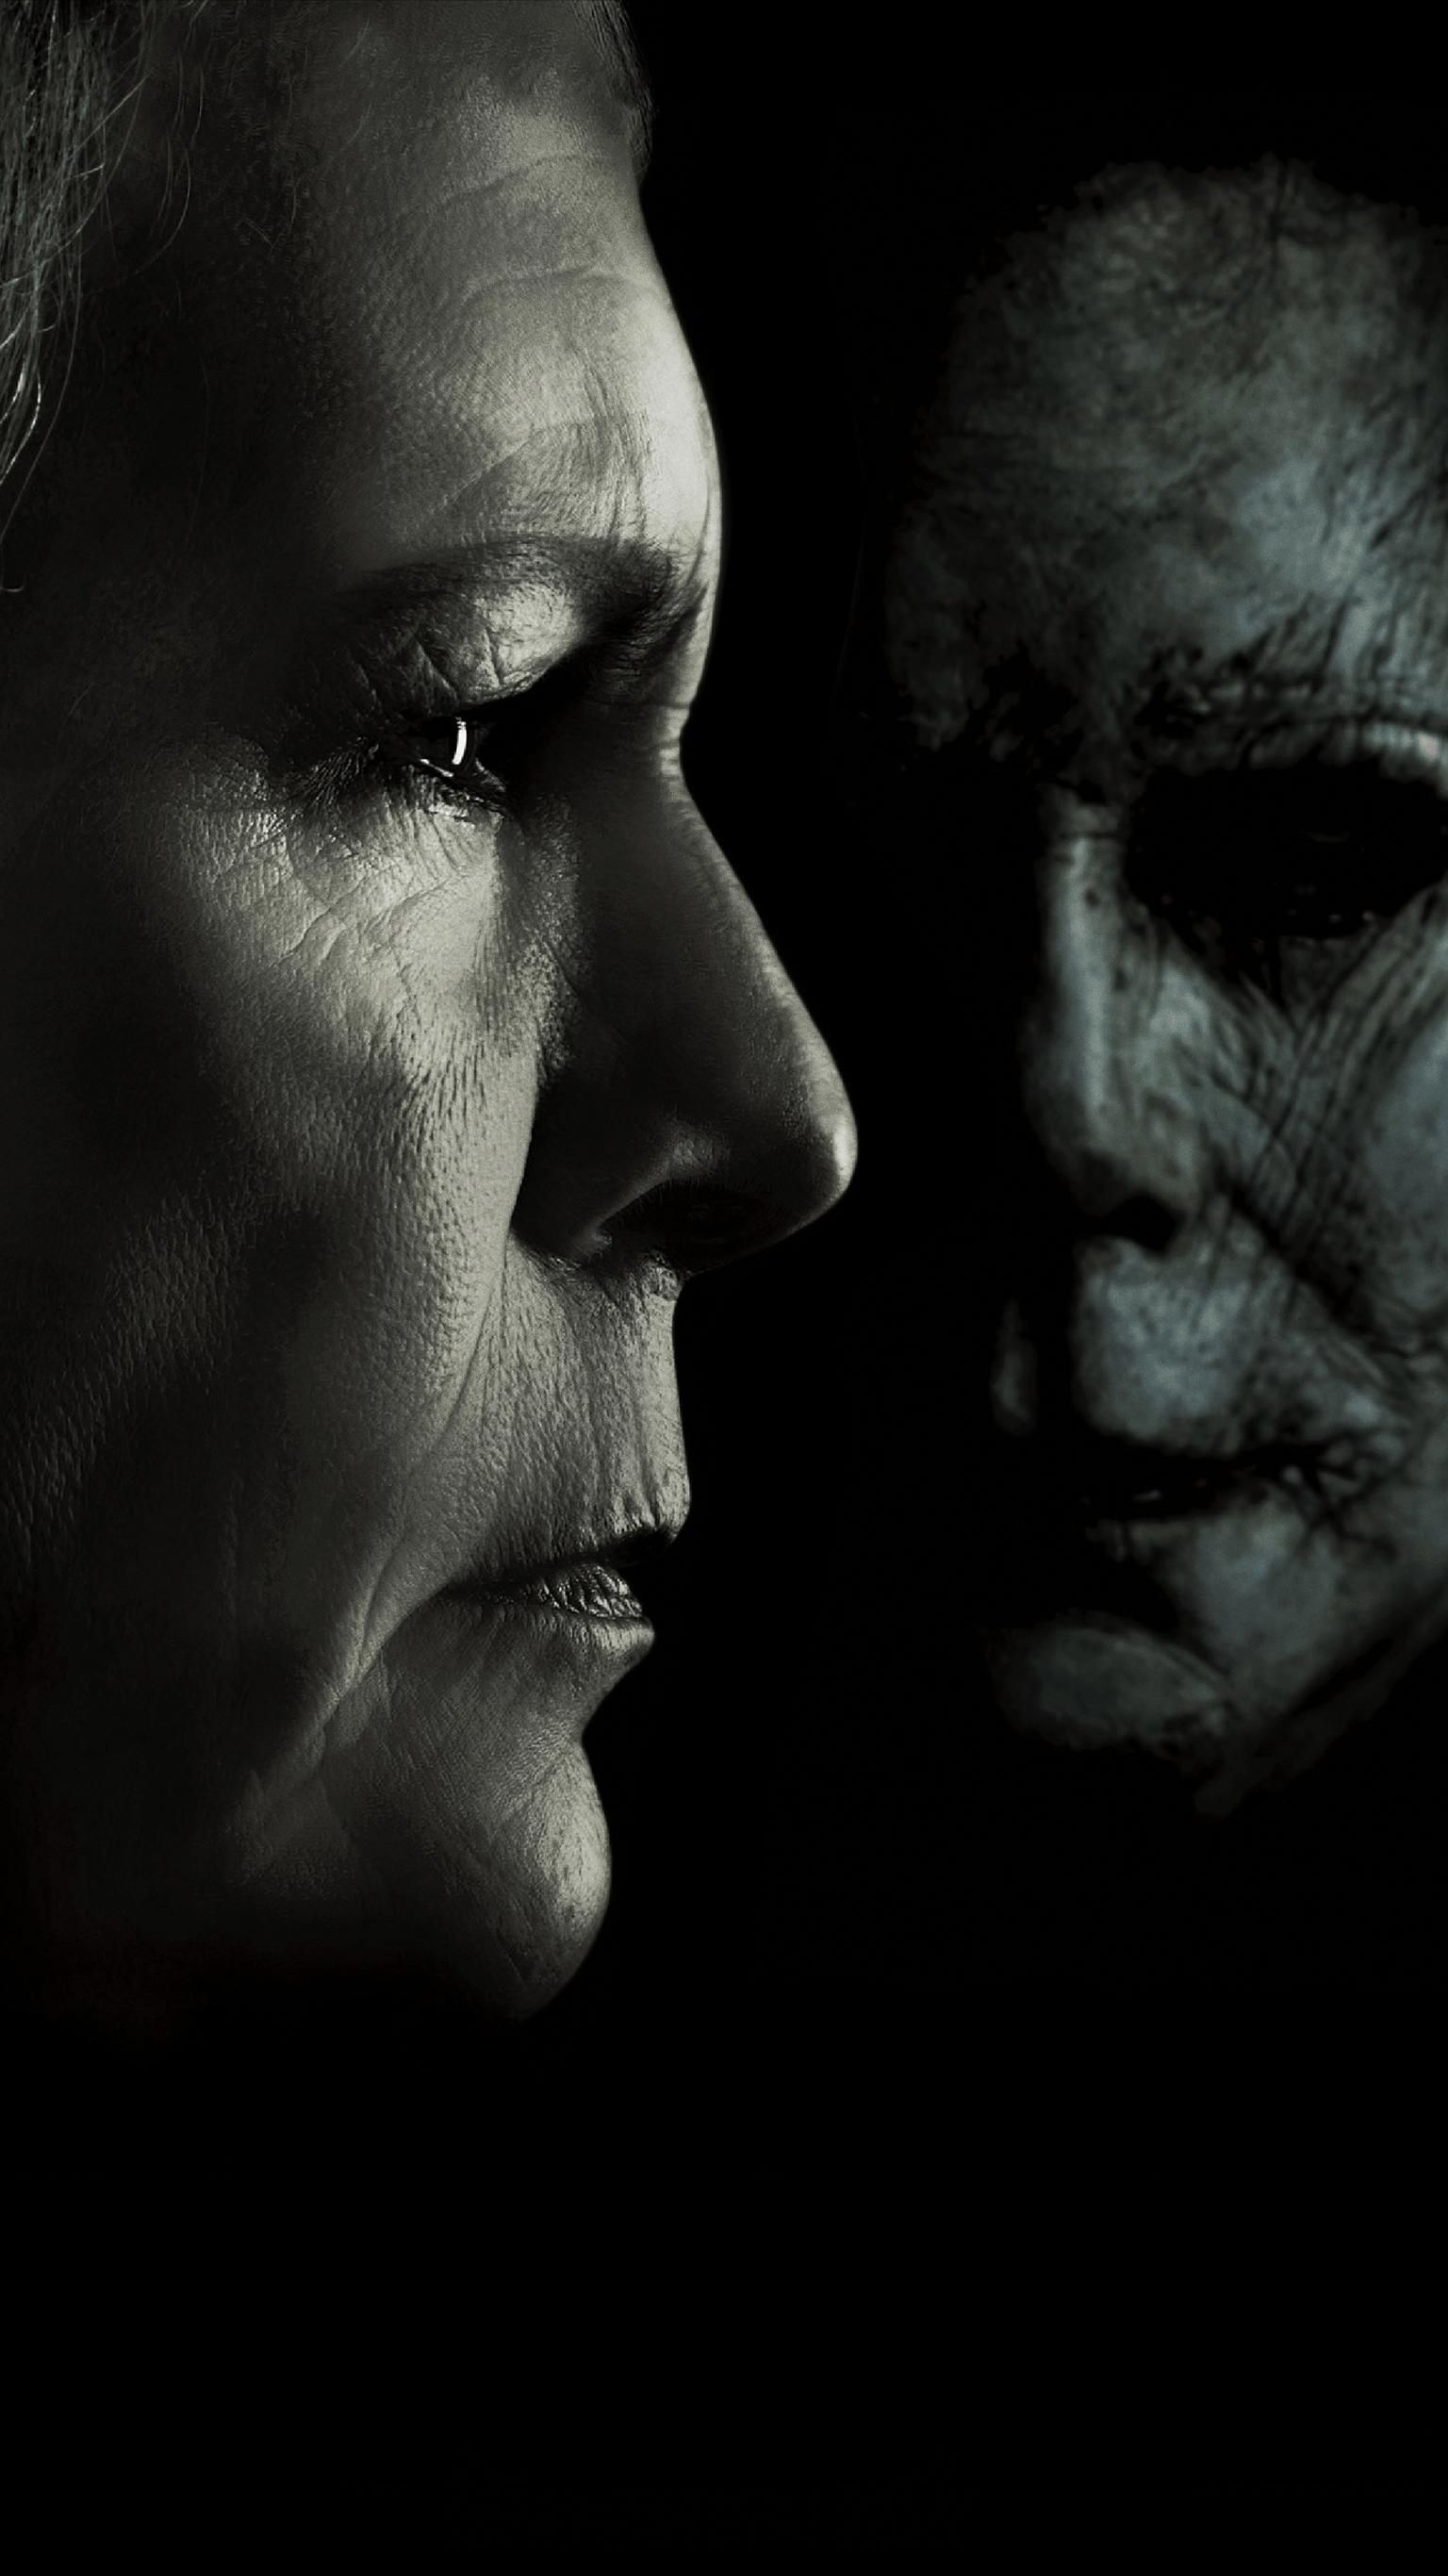 Halloween 2018 Phone Wallpaper Moviemania Halloween Movies Halloween Movie Poster Halloween Full Movie